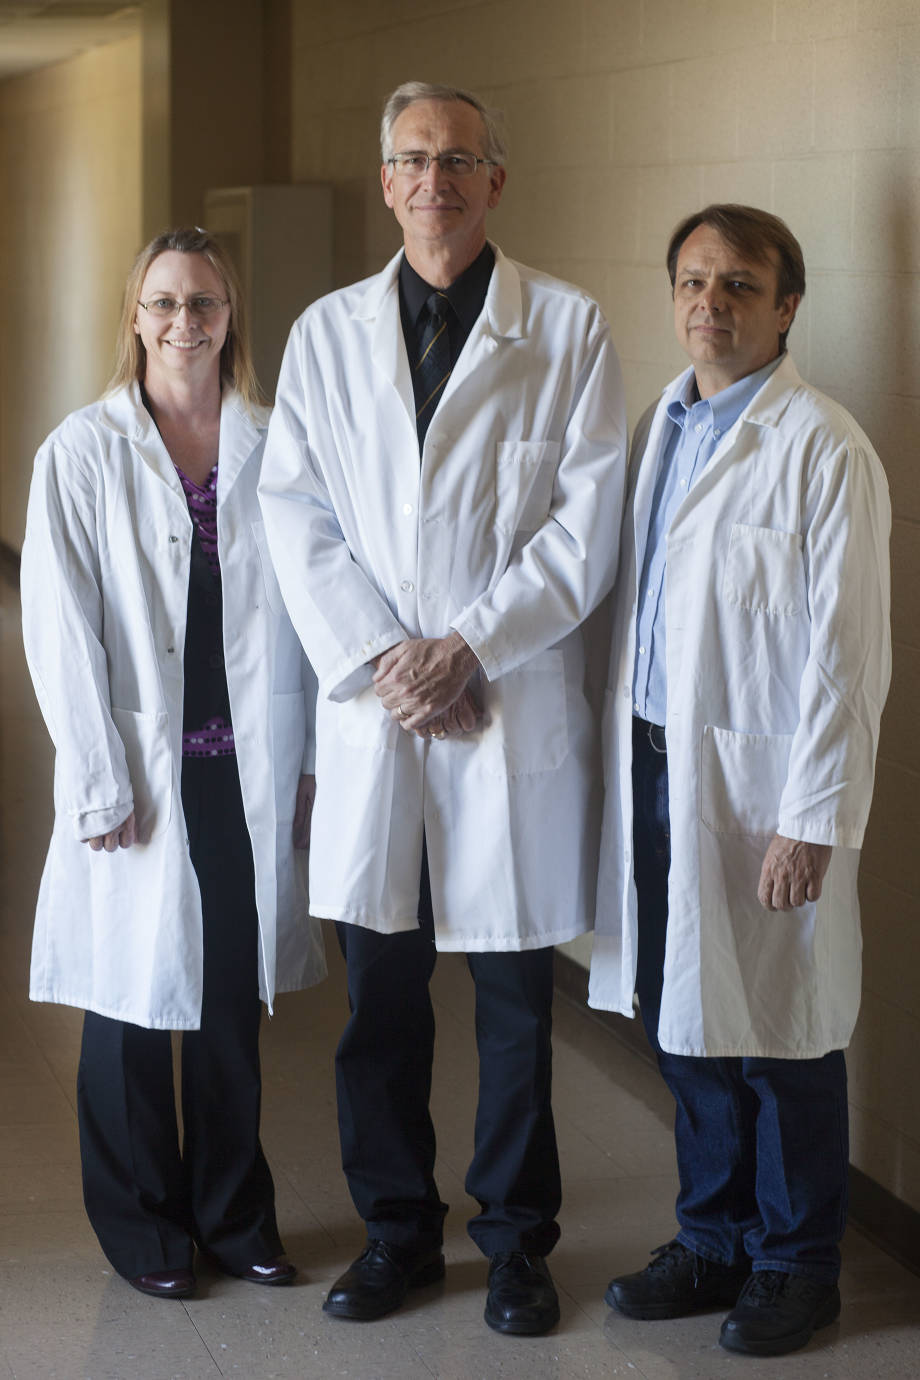 A research team lead by the trio of (from left to right) Kristin Whitworth, Randall Prather and Kevin Wells has been able to accelerate their overall work through the CRISPR Cas9 system. Photo courtesy of Mizzou News Bureau.